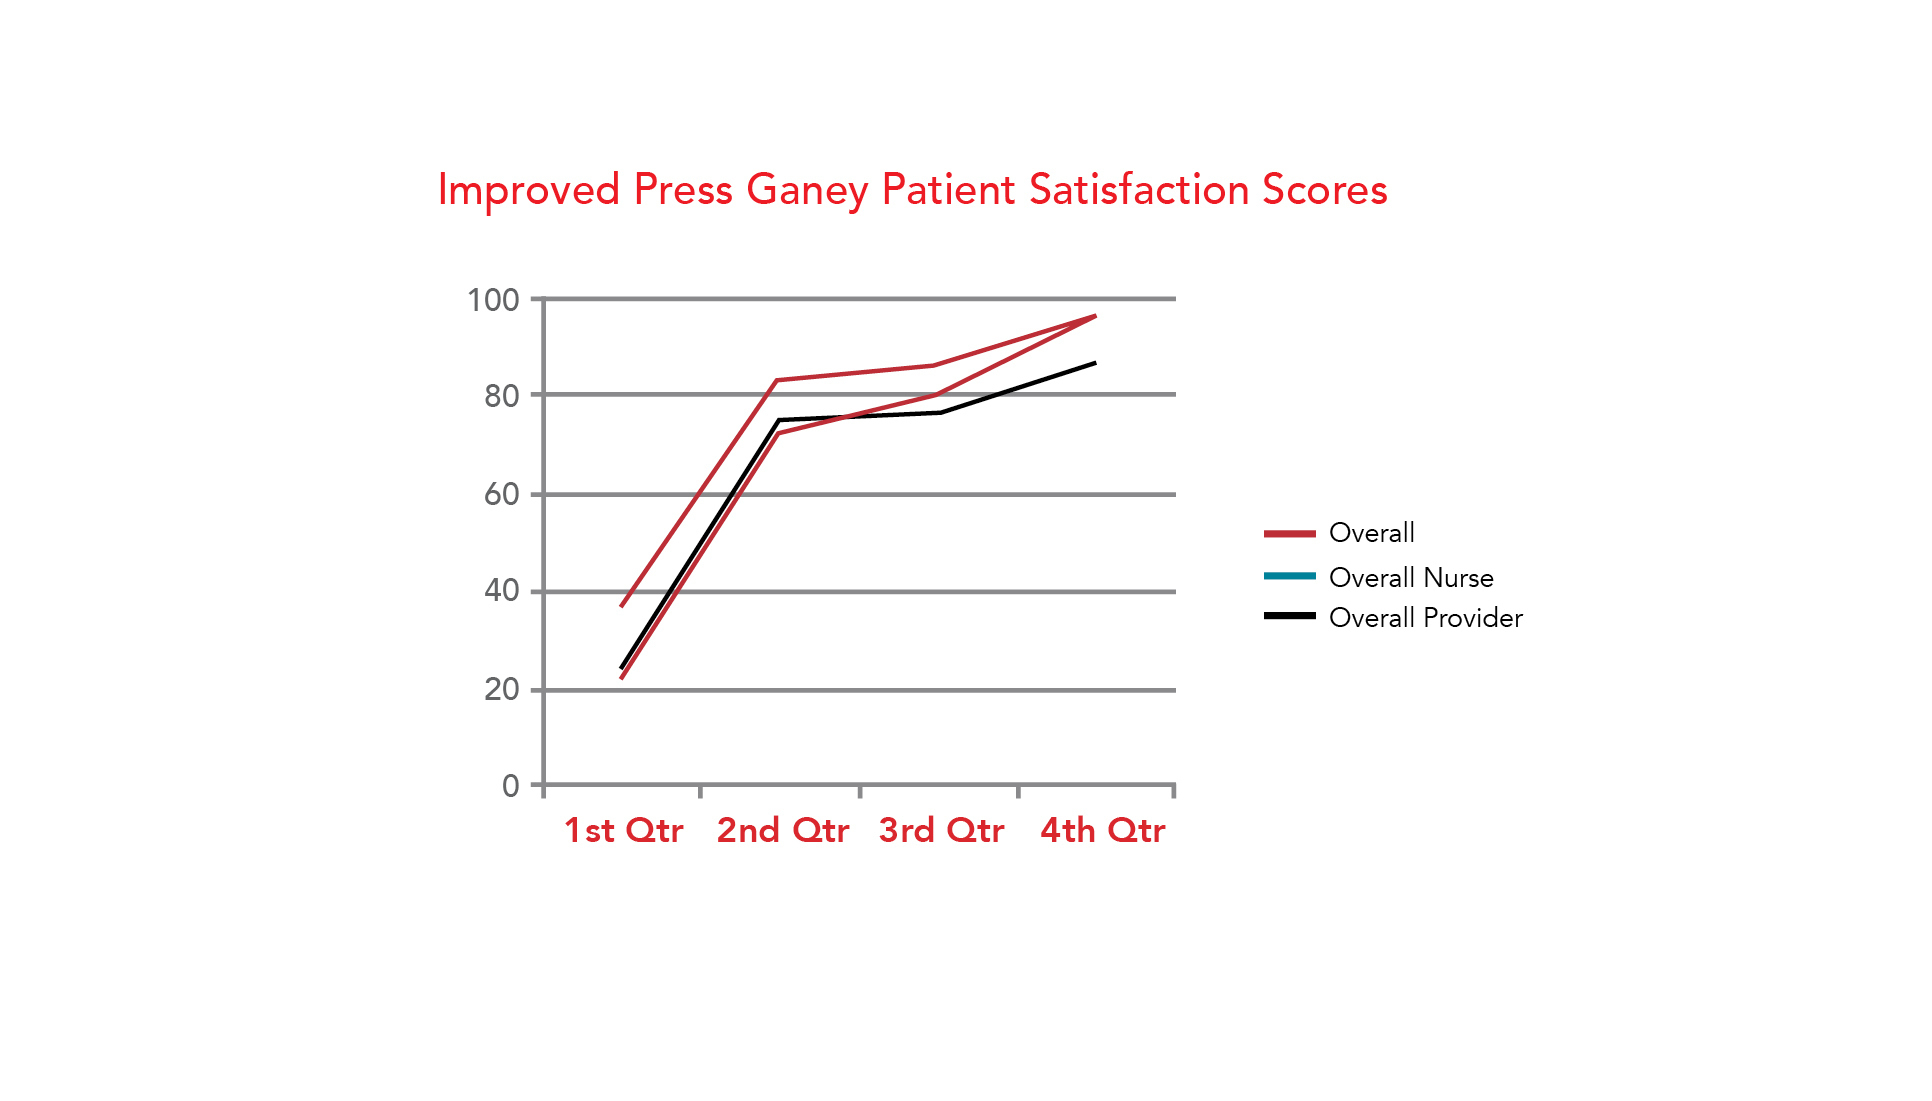 Improved Press Ganey Patient Satisfaction Scores Chart